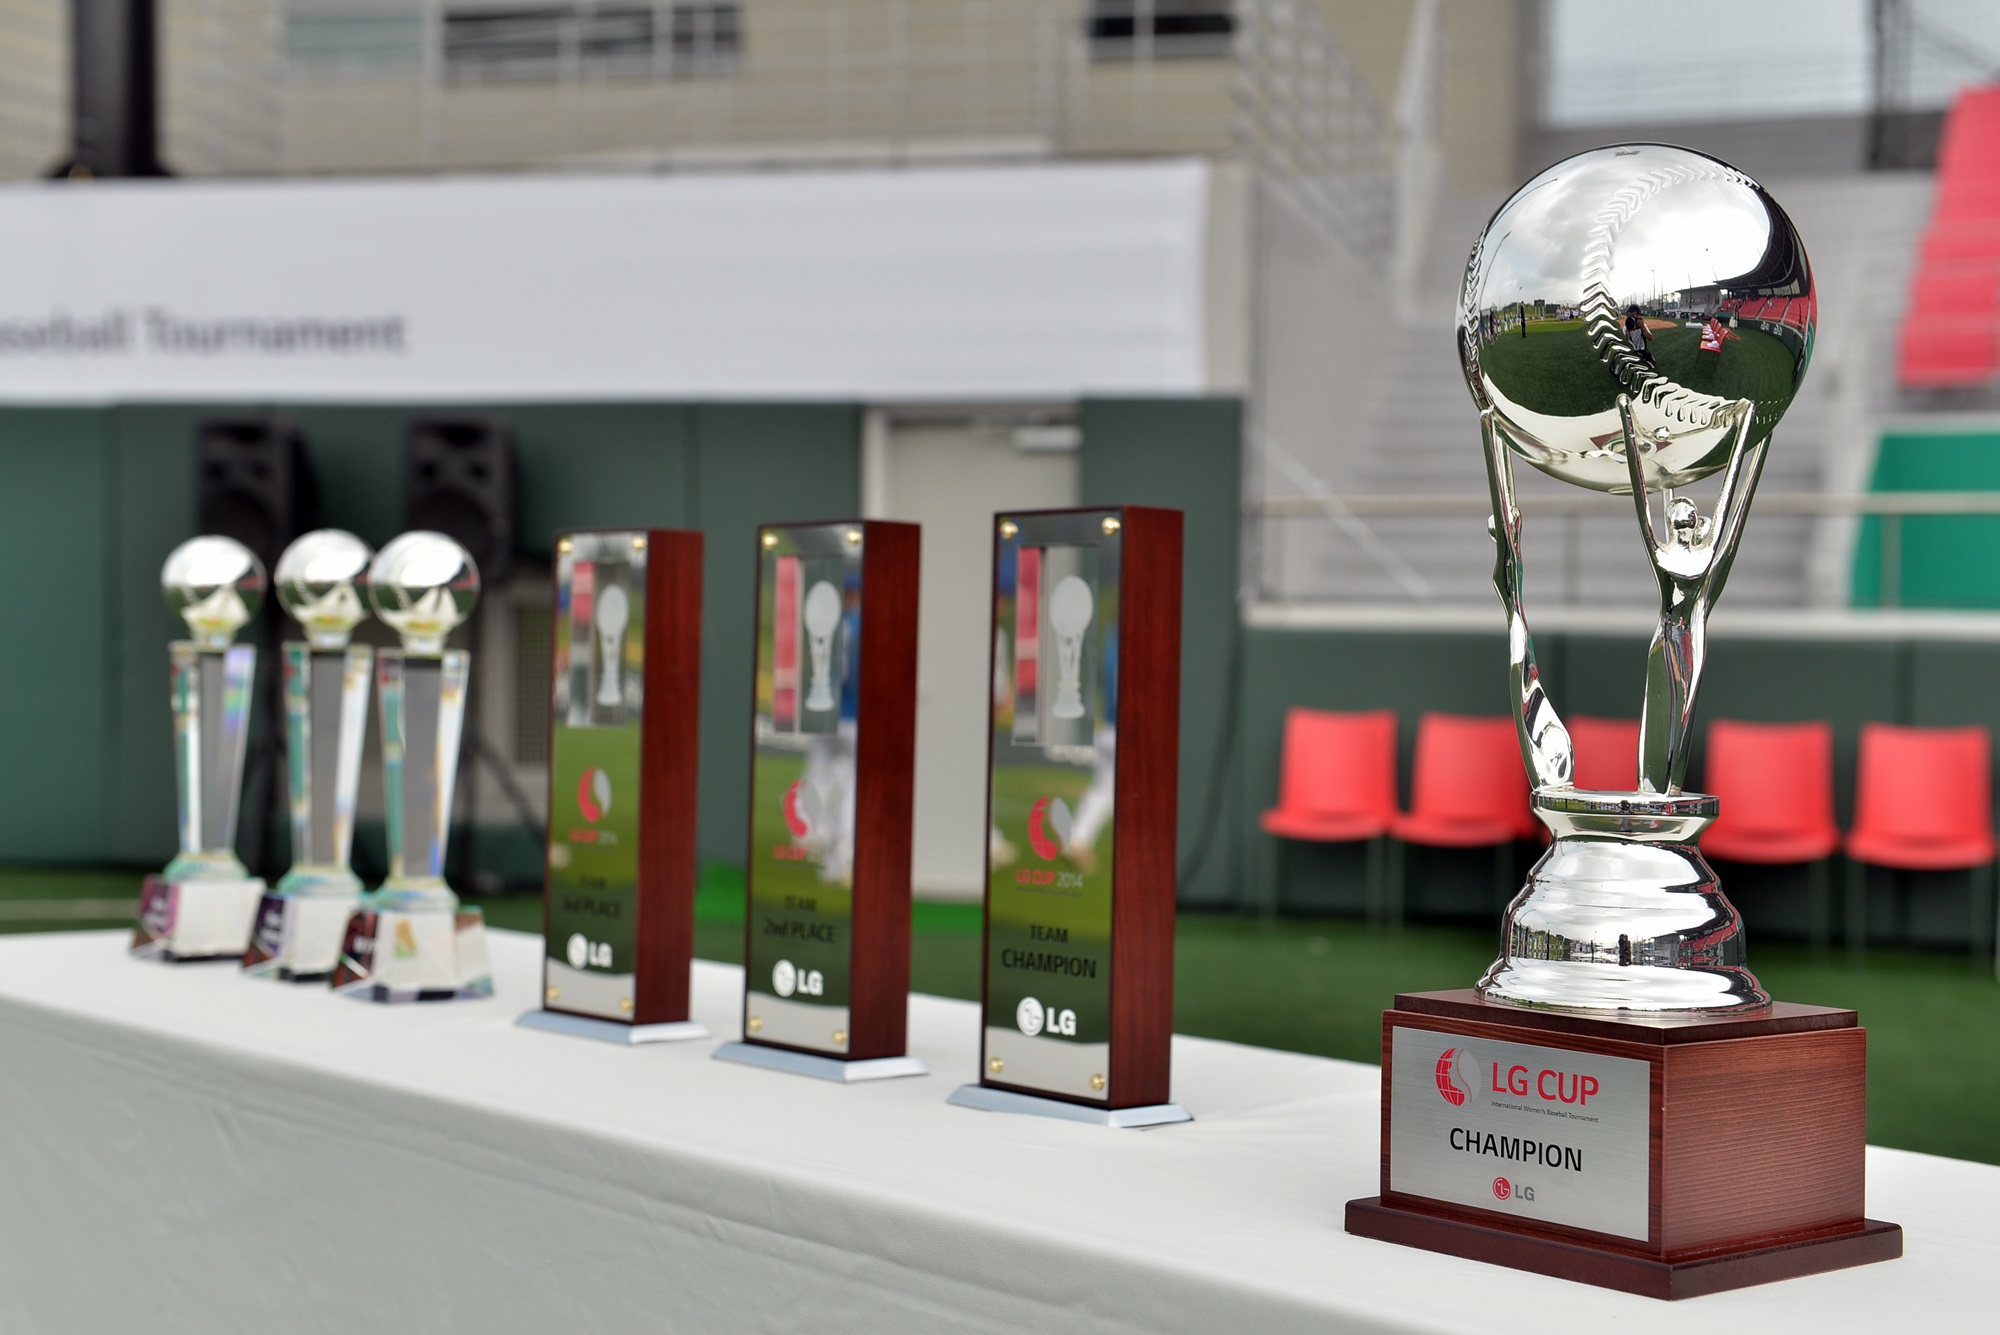 Trophies for the LG Cup 2014 winners.